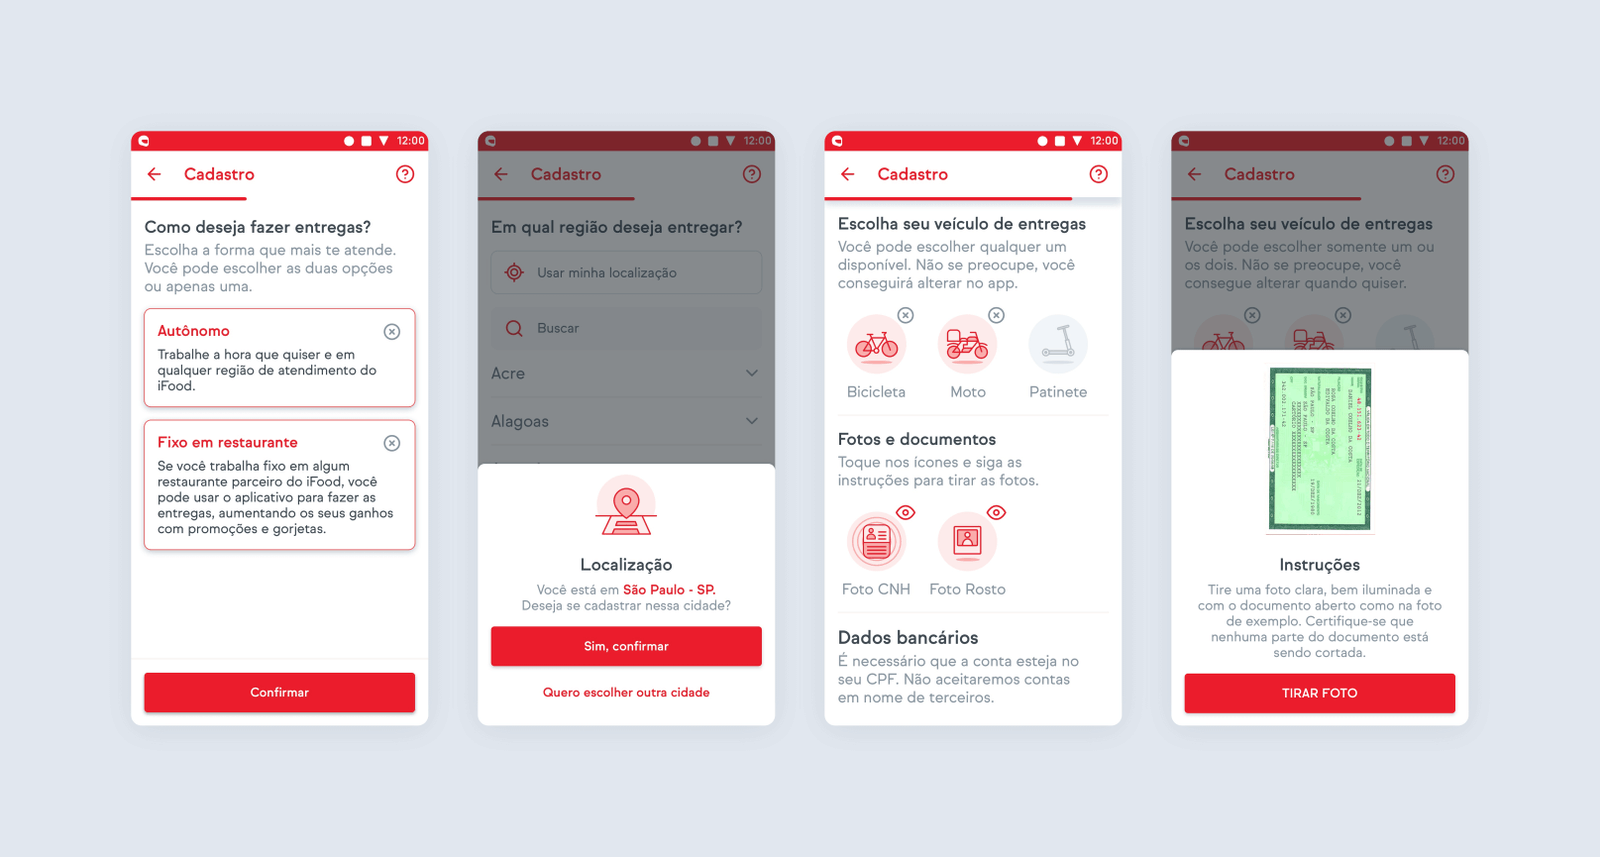 Screenshots of some of the UI